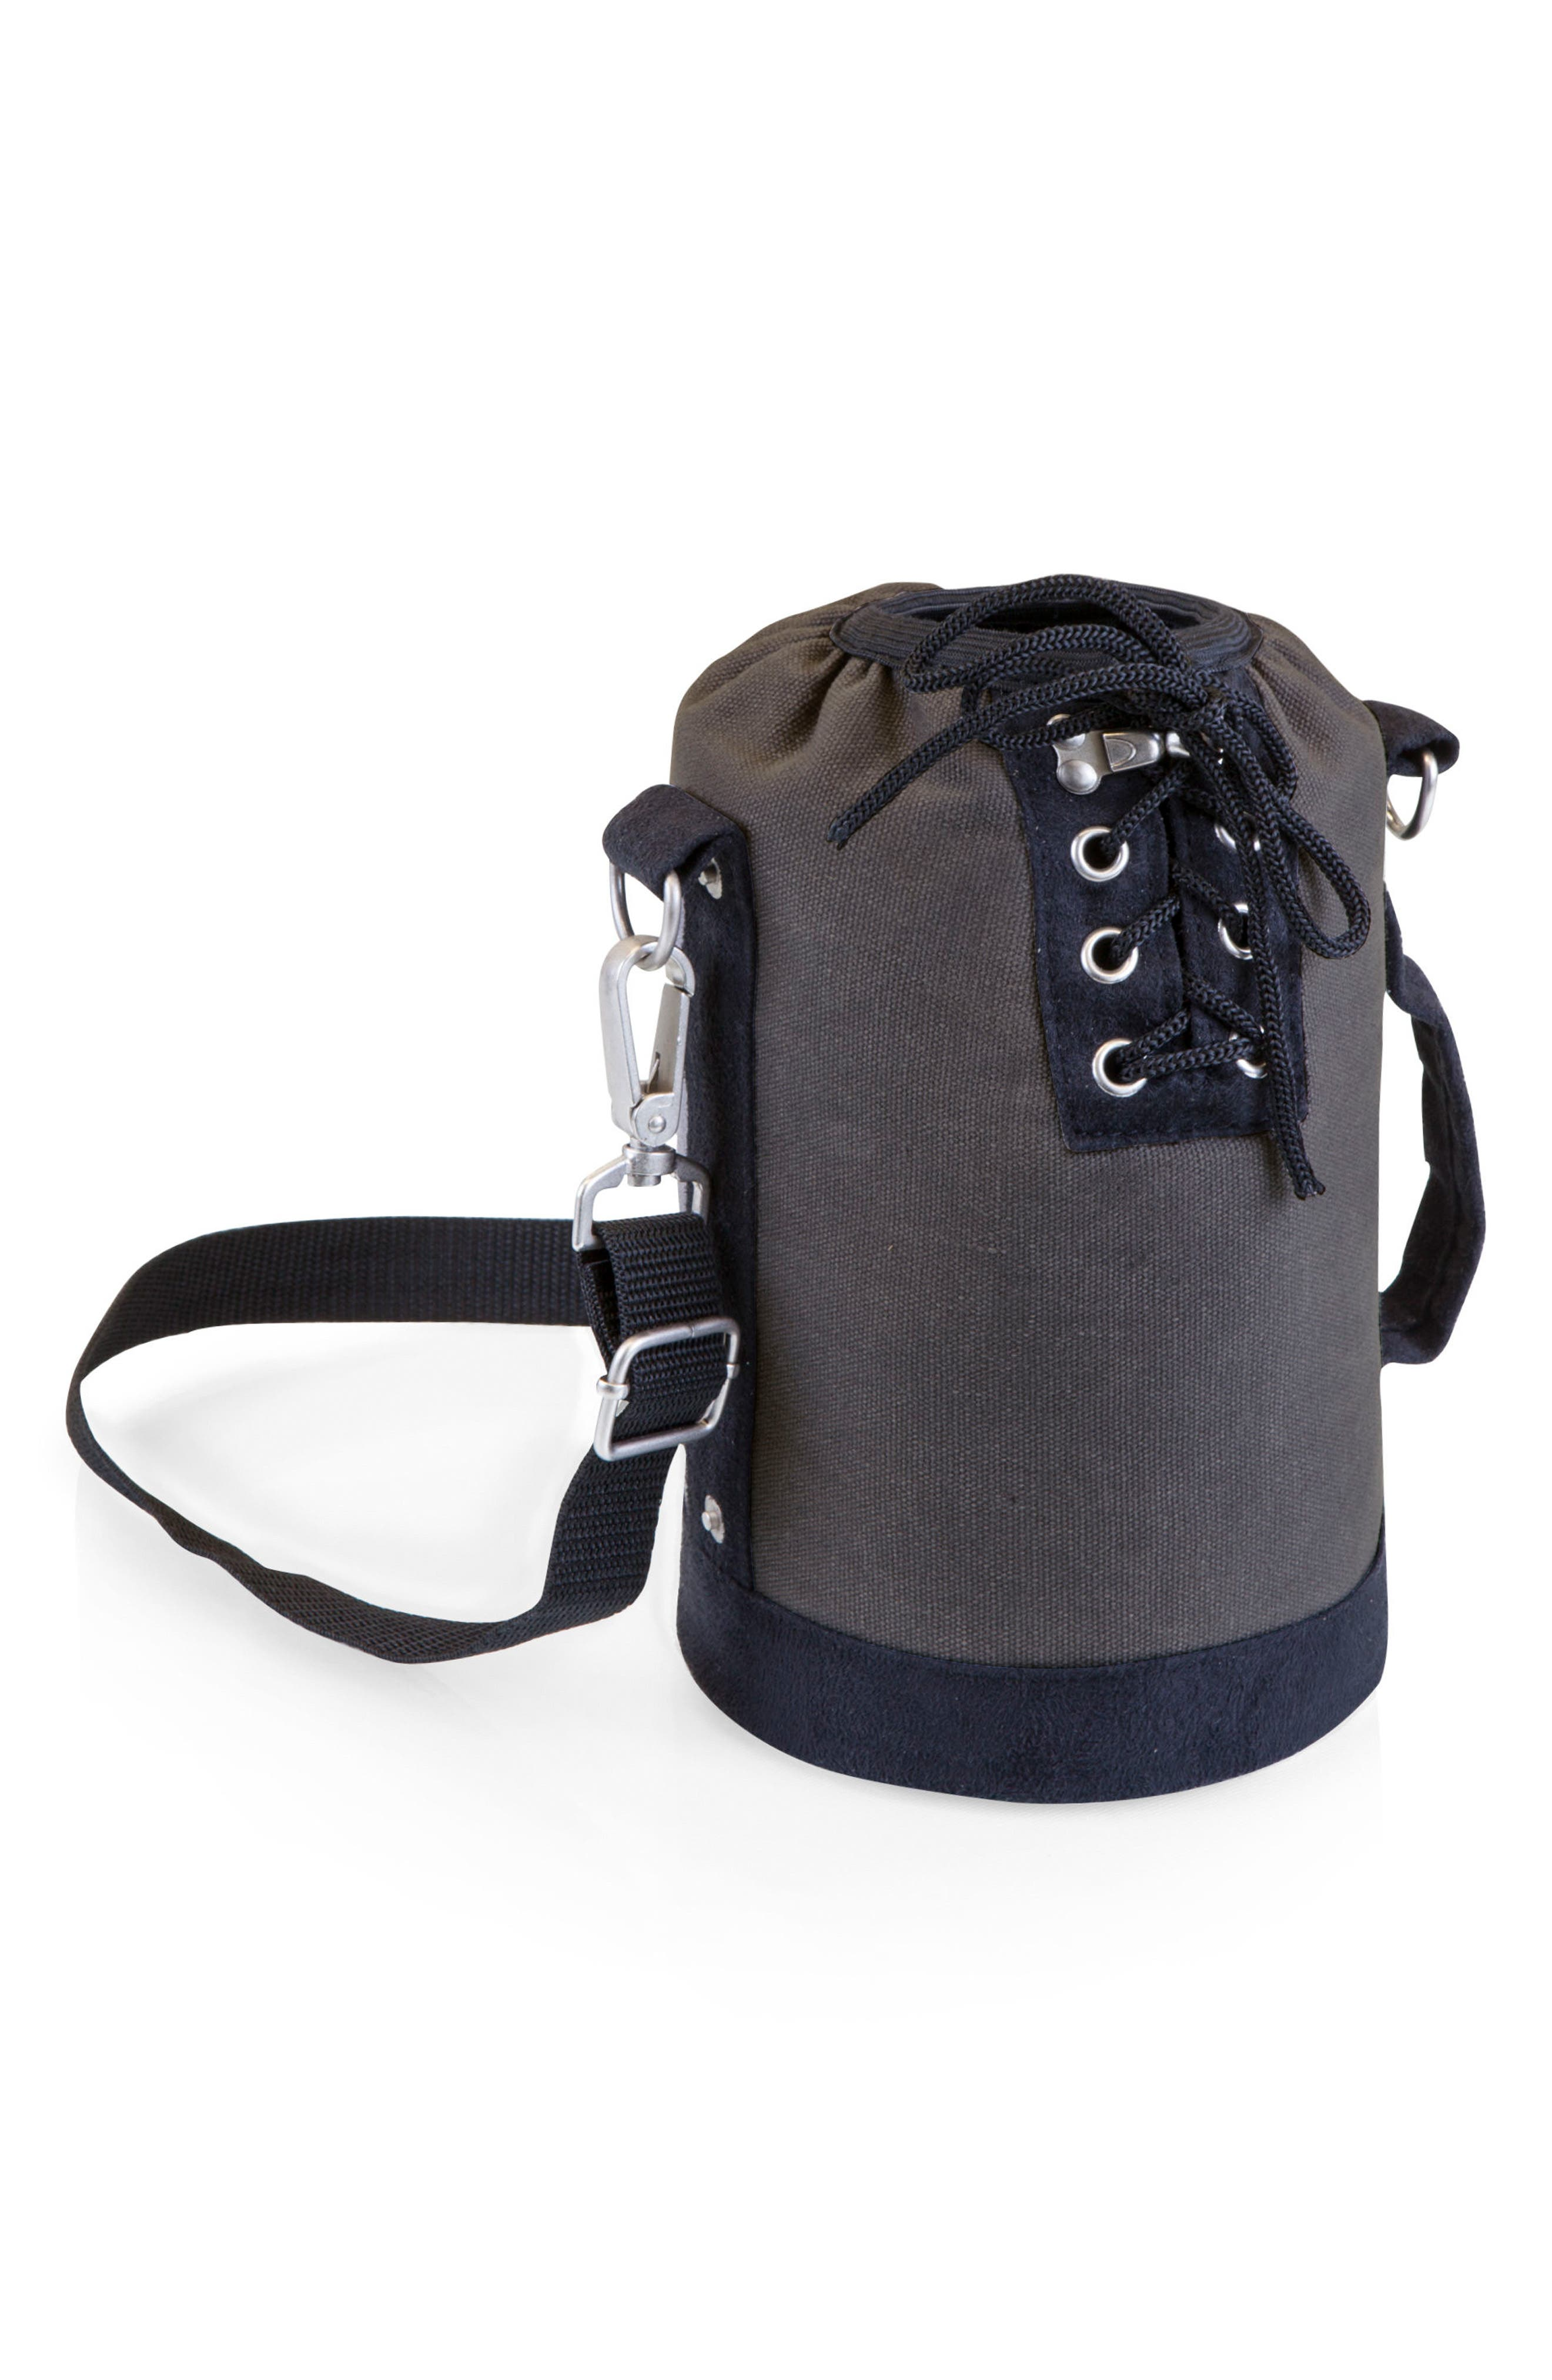 Insulated Growler Tote,                             Main thumbnail 1, color,                             Grey W/ Black